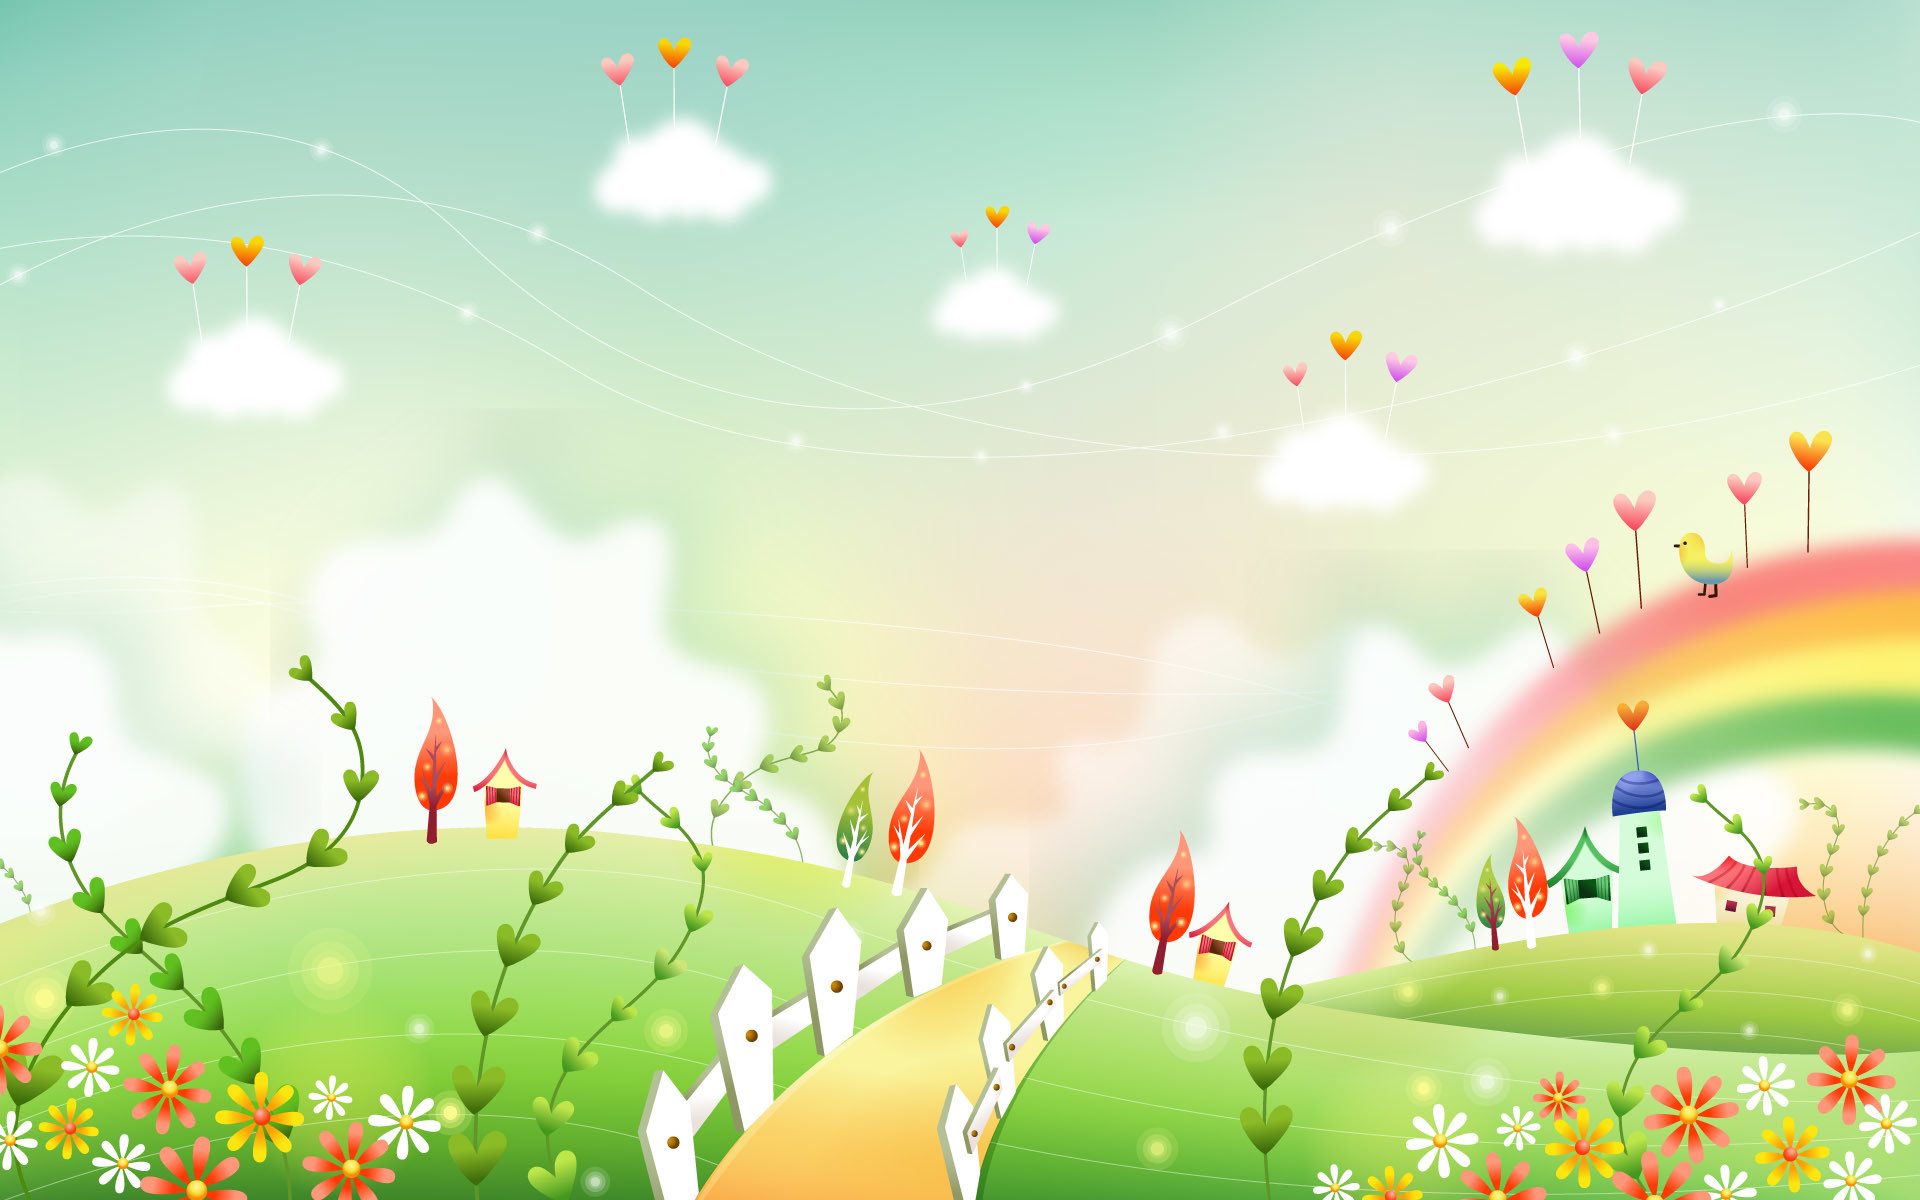 Background clipart. Images x timy